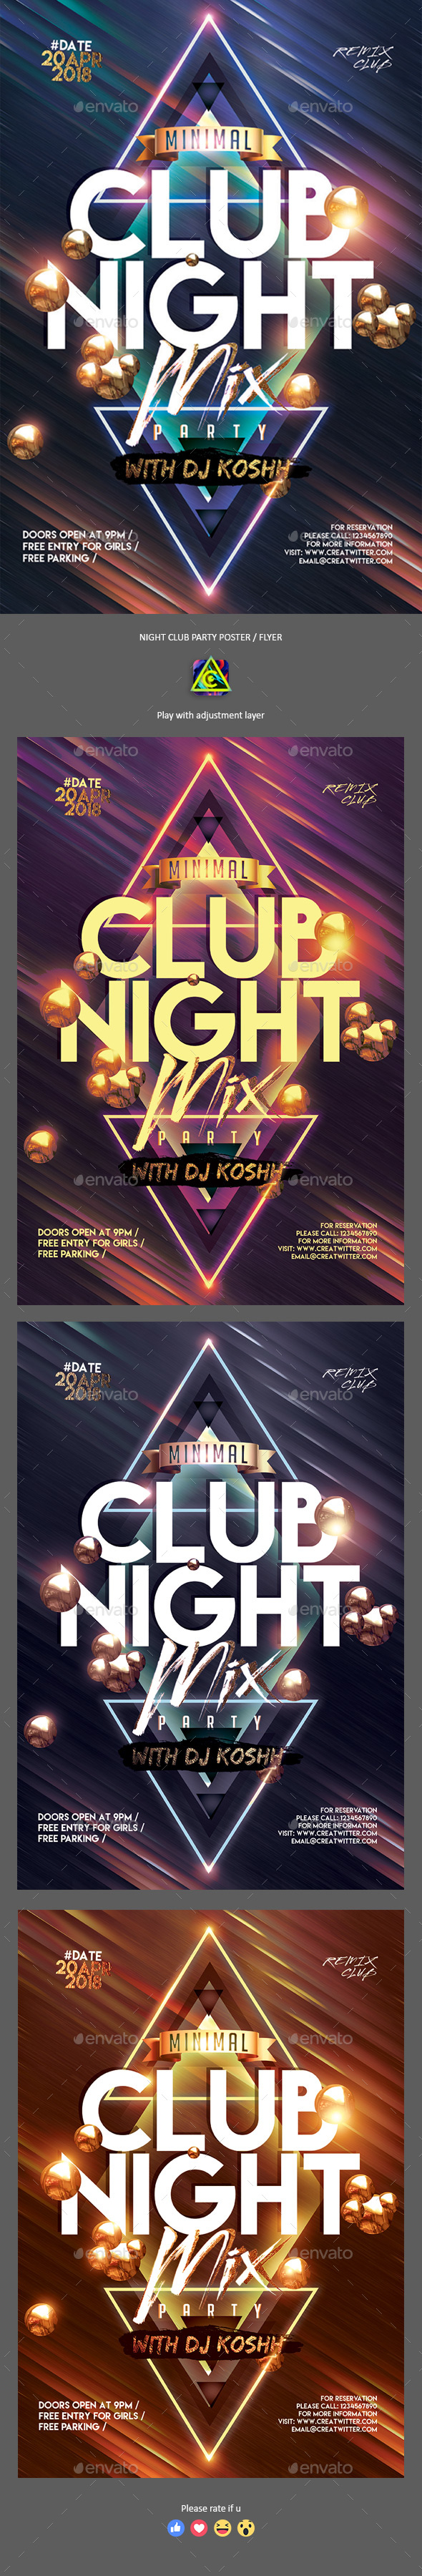 CLub Night Party Poster / Flyer - Clubs & Parties Events